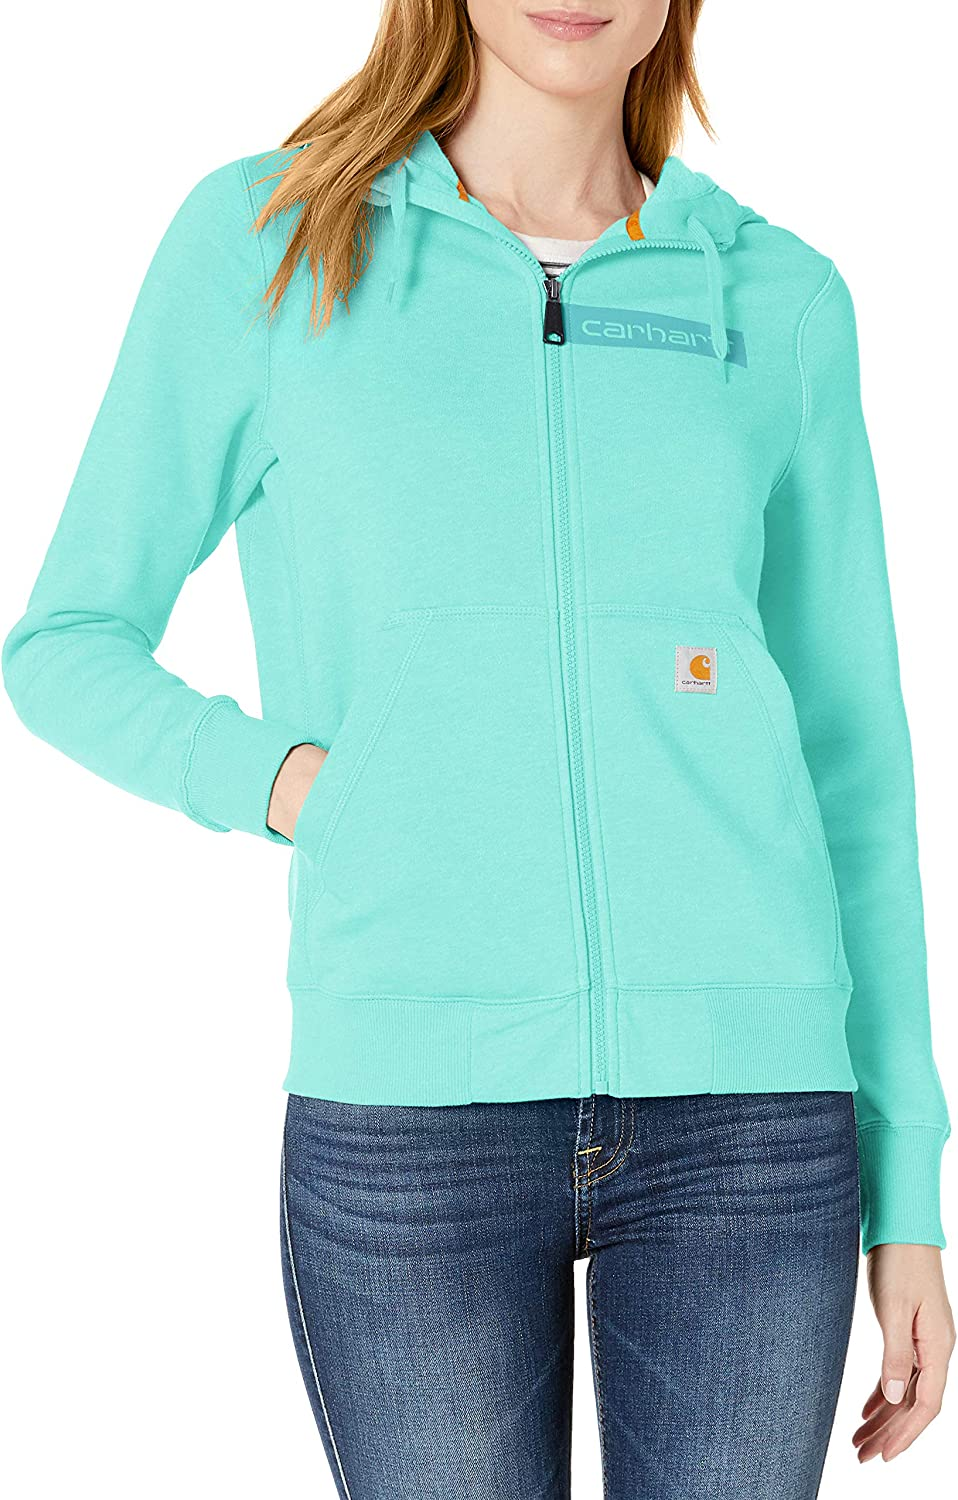 E1-2786 Carhartt Womens Force Extremes Zip Front Sweatshirt SMALL